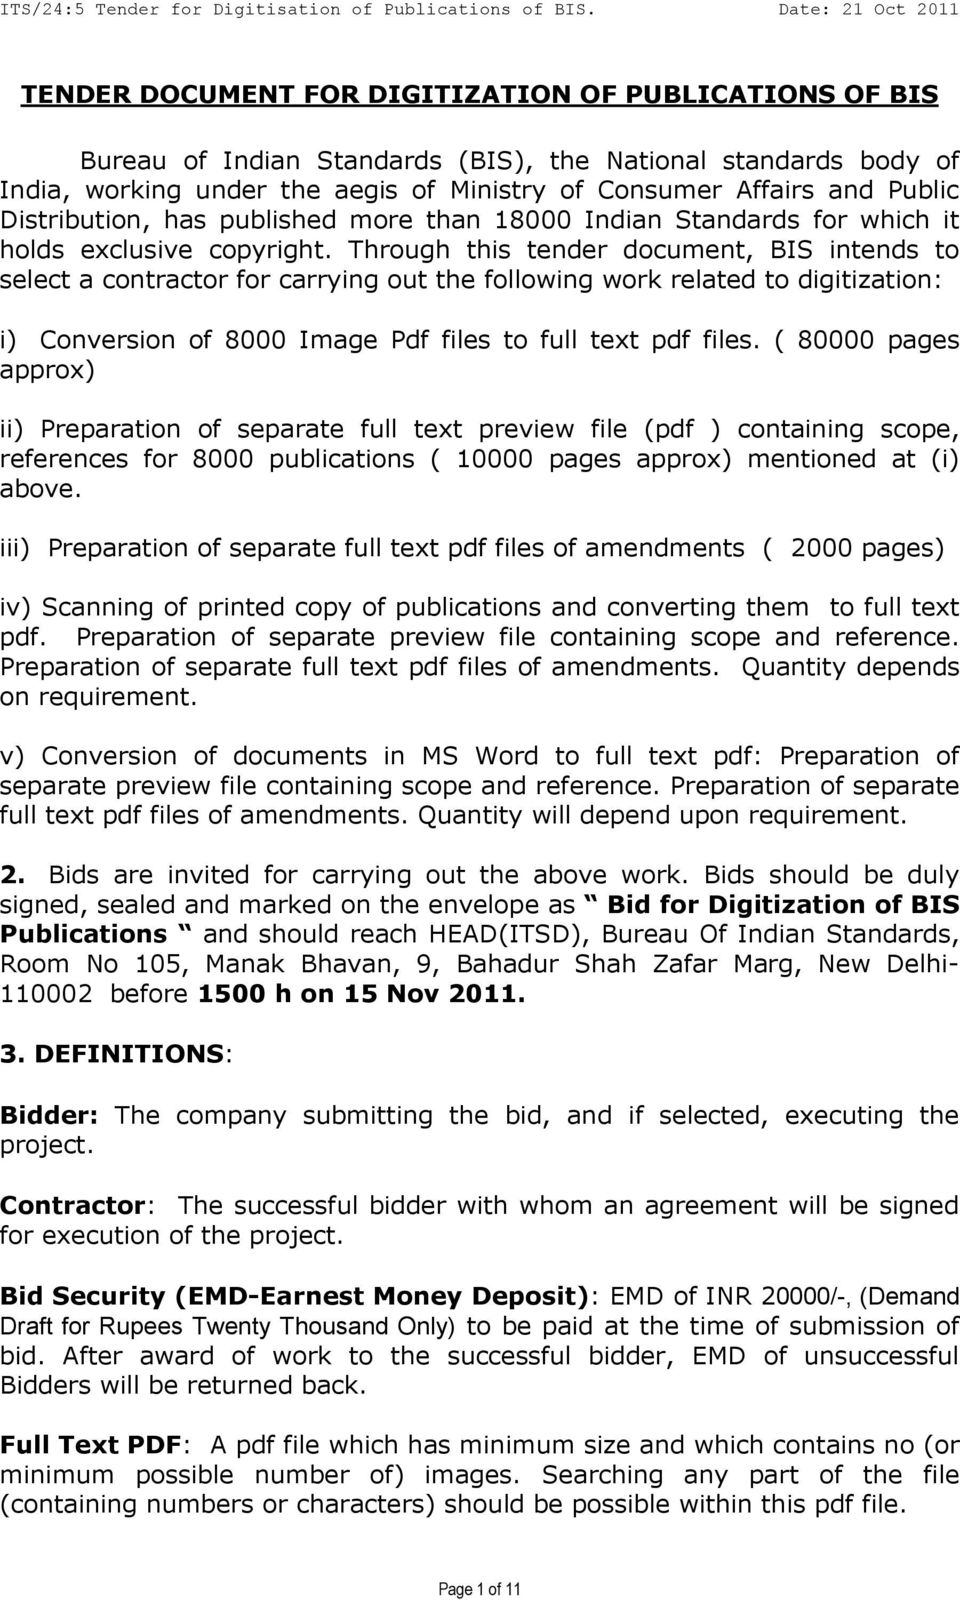 Through this tender document, BIS intends to select a contractor for carrying out the following work related to digitization: i) Conversion of 8000 Image Pdf files to full text pdf files.